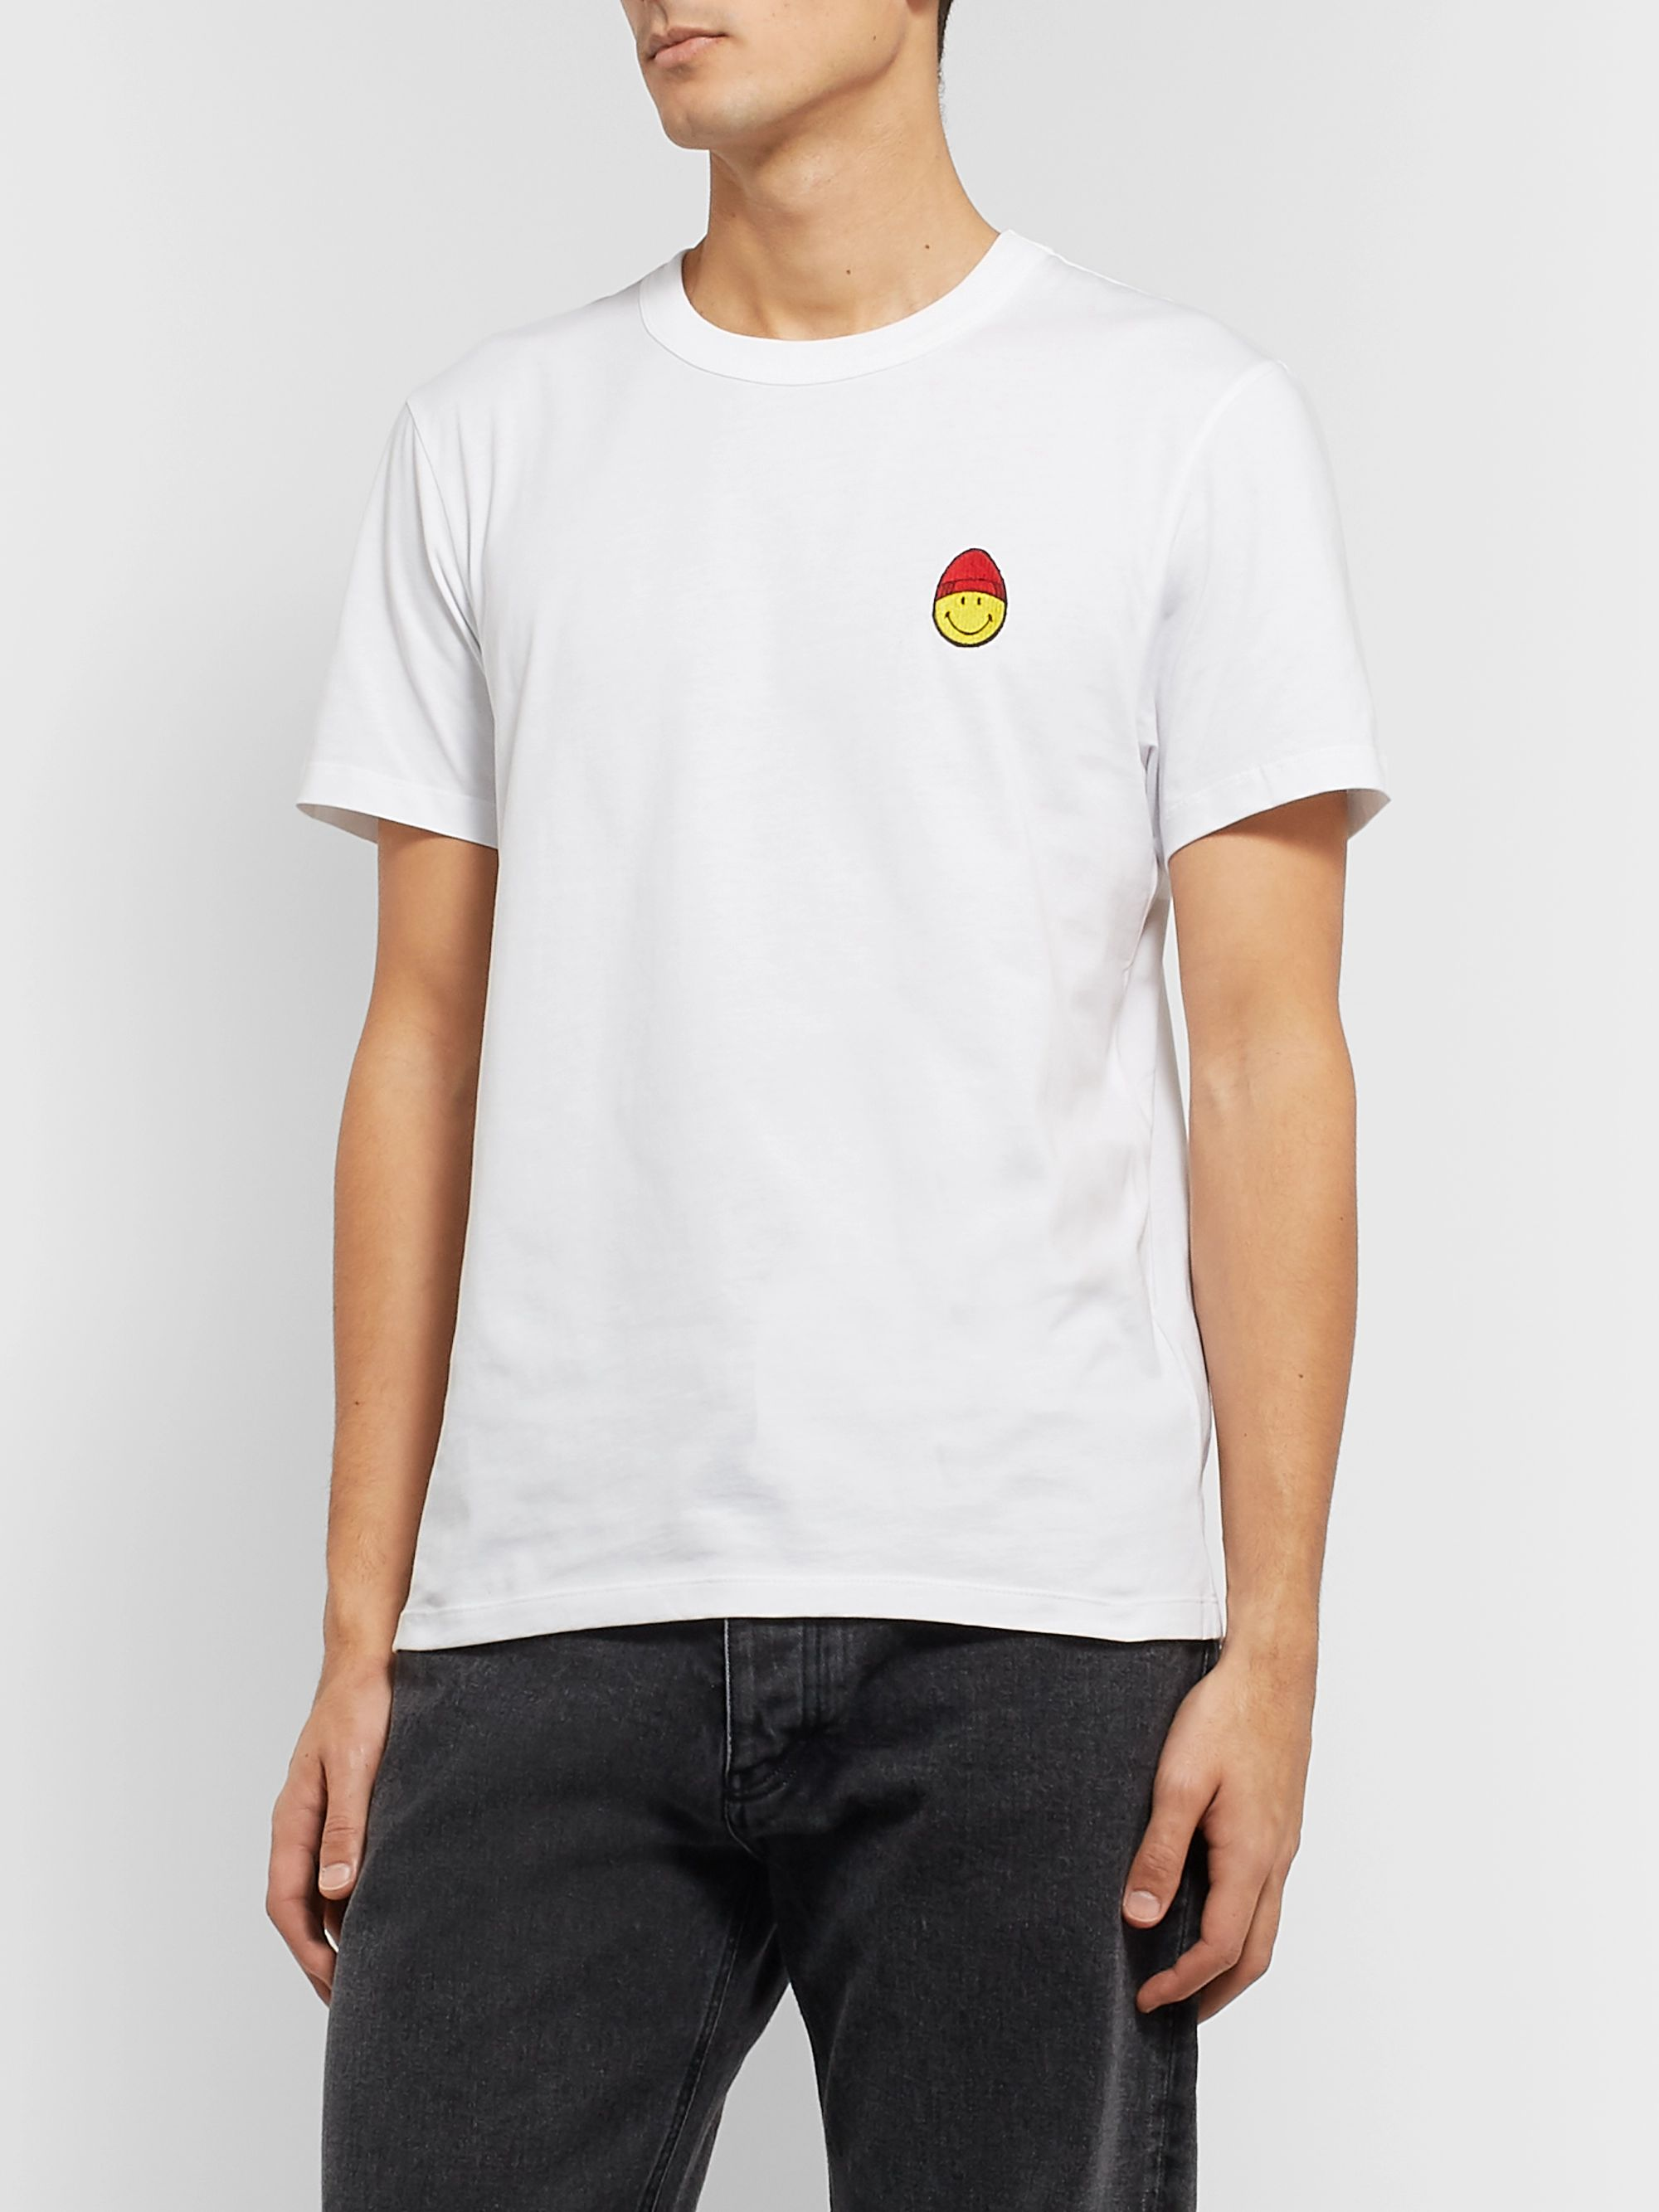 AMI + The Smiley Company Logo-Appliquéd Cotton-Jersey T-Shirt